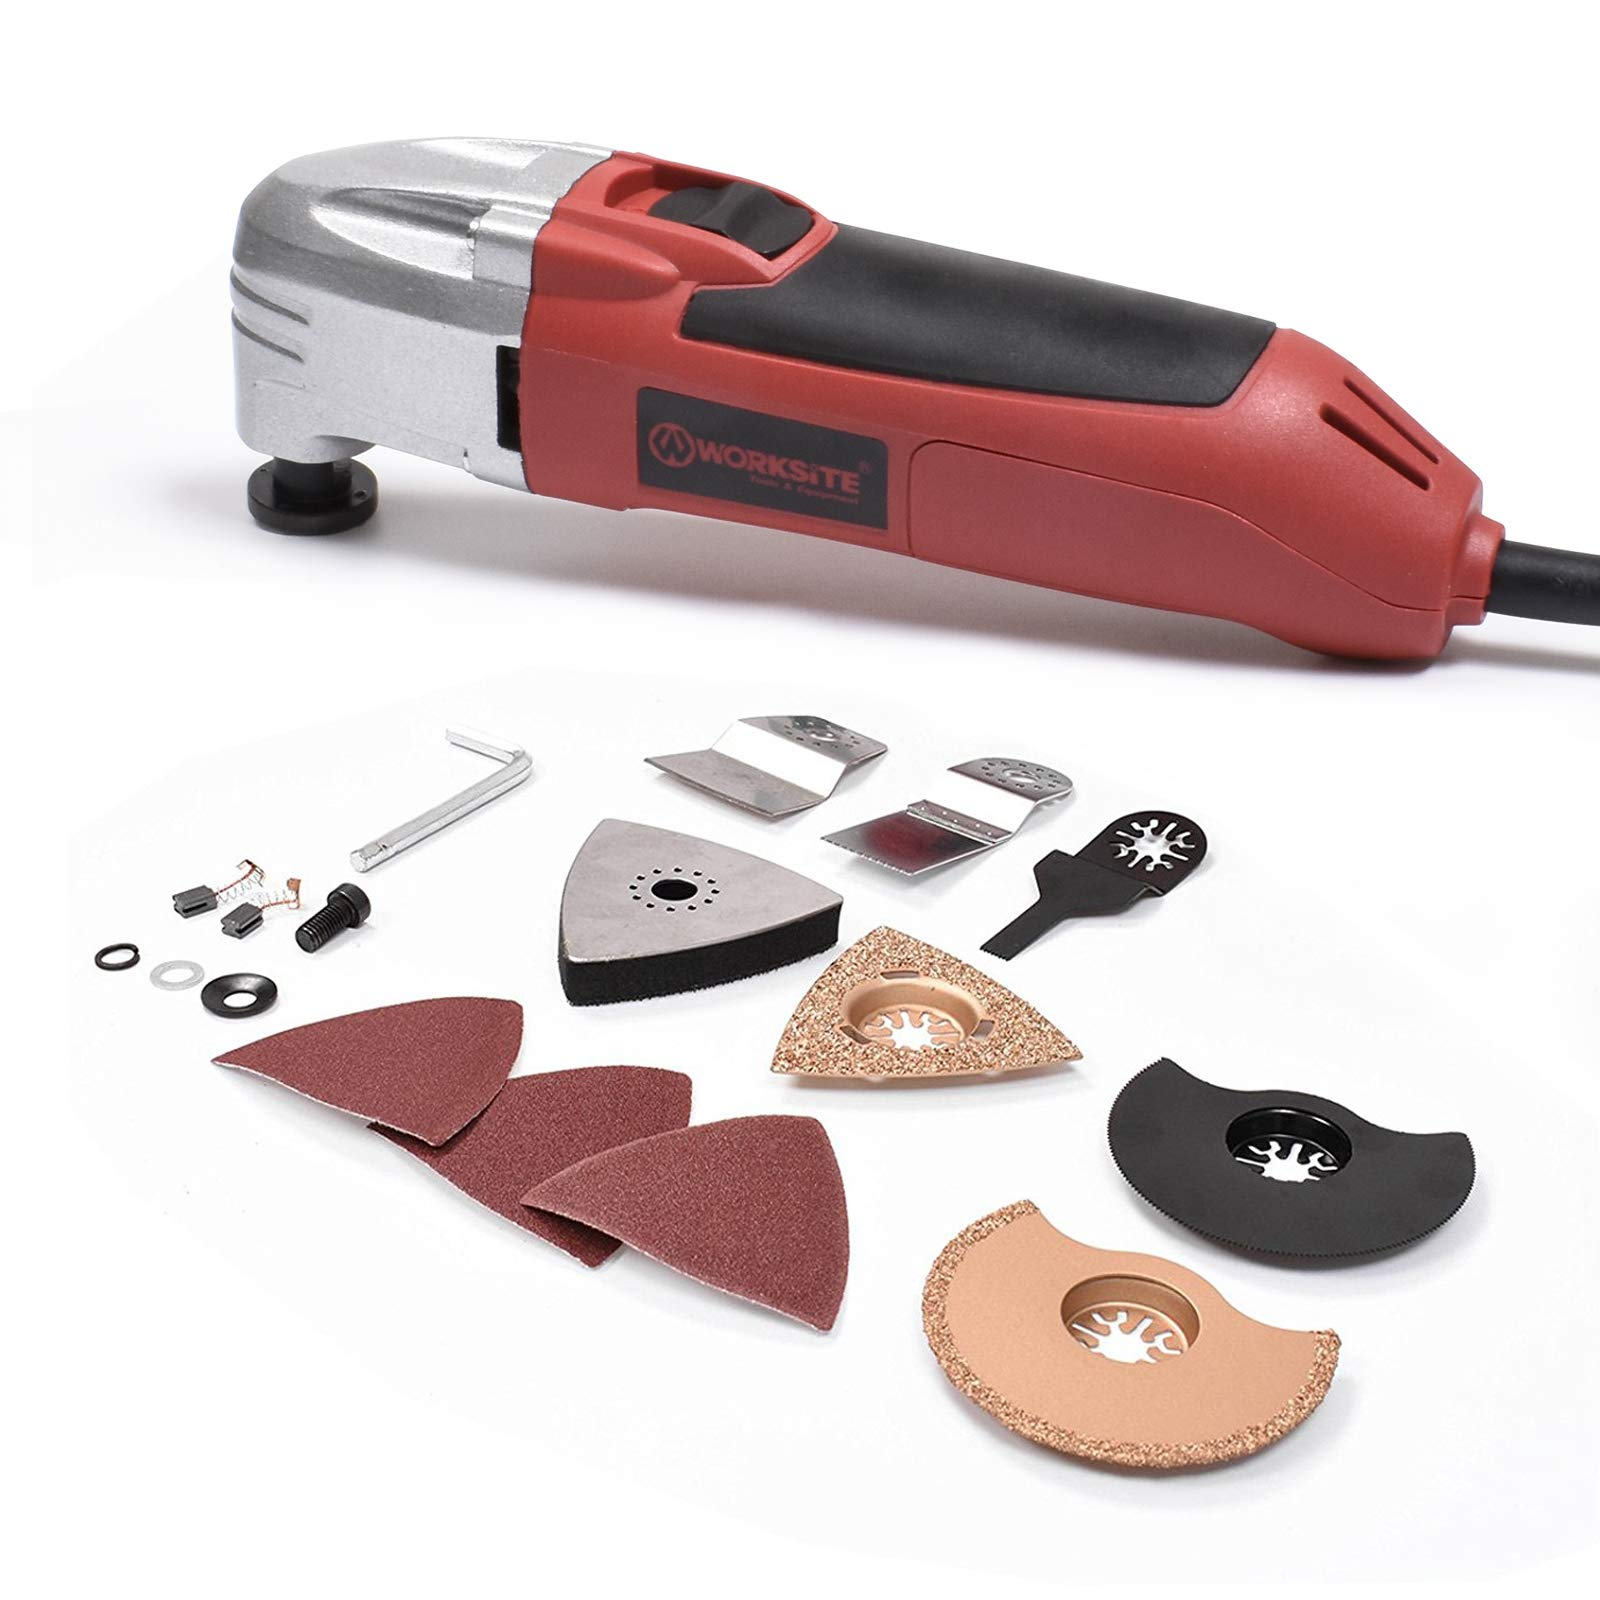 WORKSITE DMT122 Oscillating Multi-Tool with Carbide Grout Blade, Half Moon Saw Blade, Triangular Carbide Grit Rasp Blade, Rigid Scraper Blade, Triangular Sanding Pad for Shoveling, Sanding, Cutting